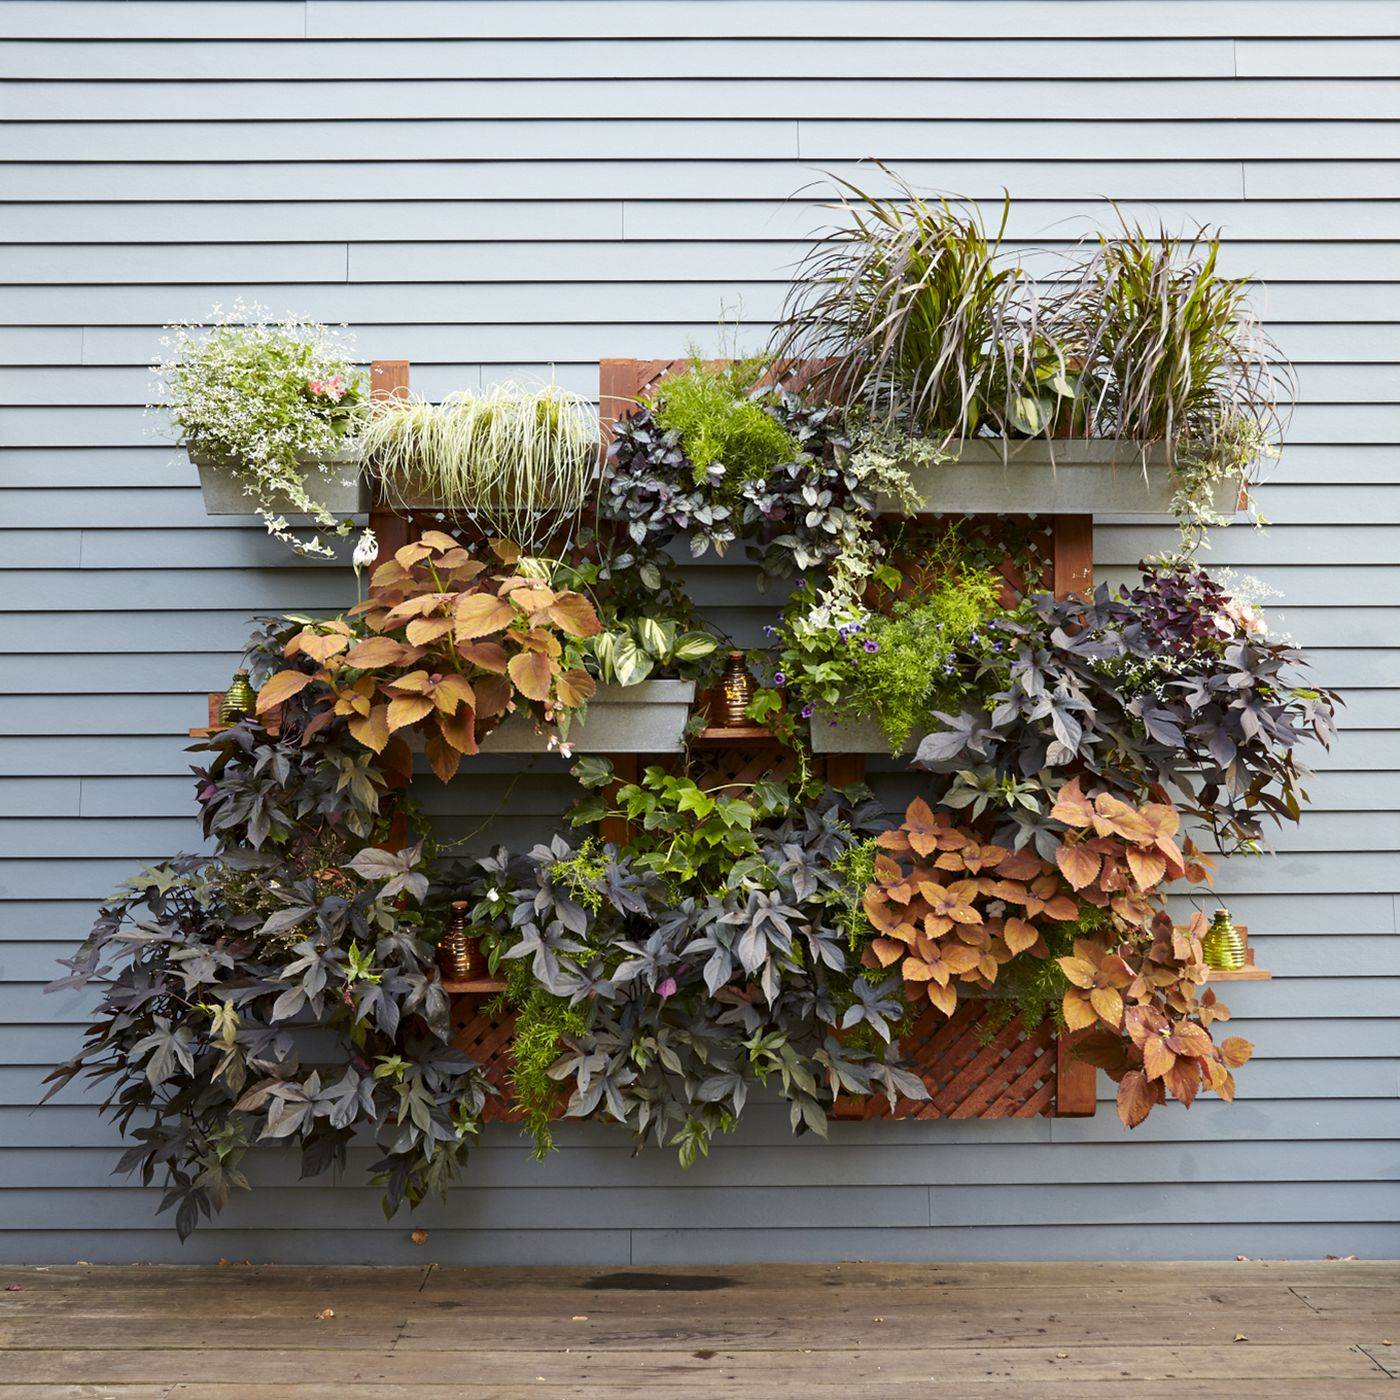 How To Build A Living Wall Vertical Garden This Old House